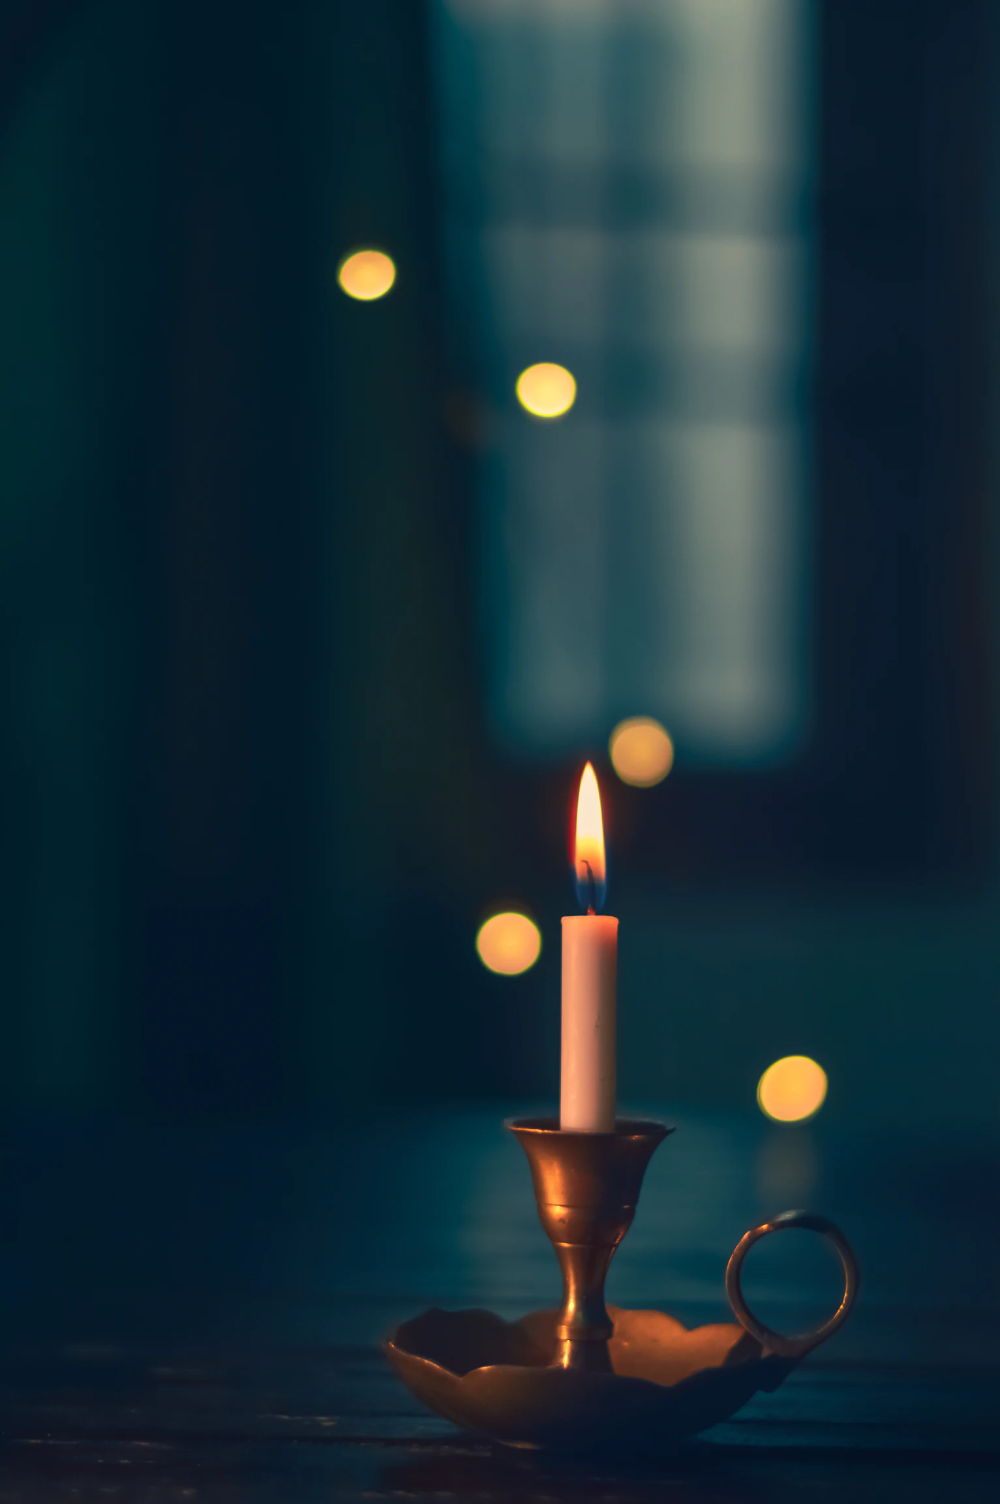 White Candle Lit On Brass Candle Holder Photo Free Candle Image On Unsplash Candles Wallpaper Candle Photography Dark Candles Photography